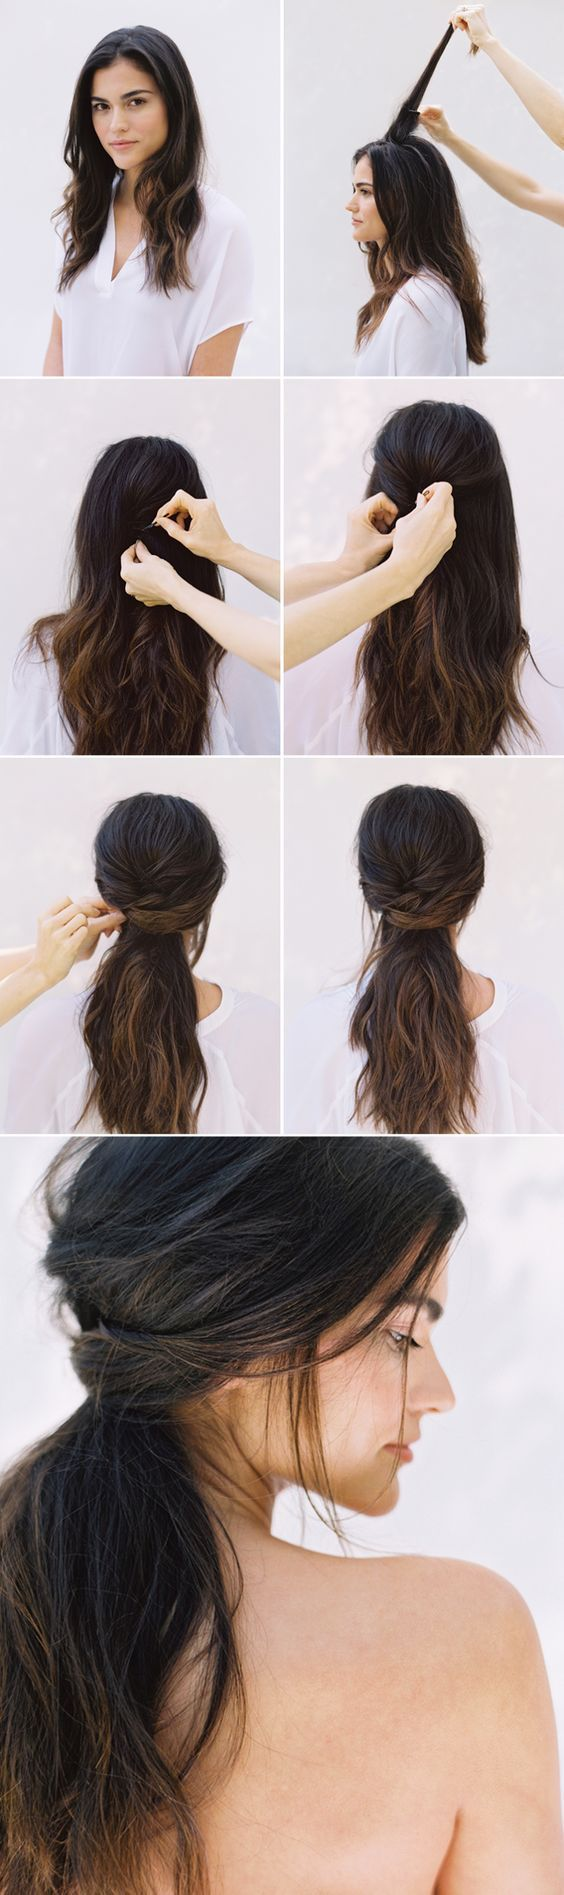 best 20+ wedding ponytail ideas on pinterest | bridesmaid ponytail